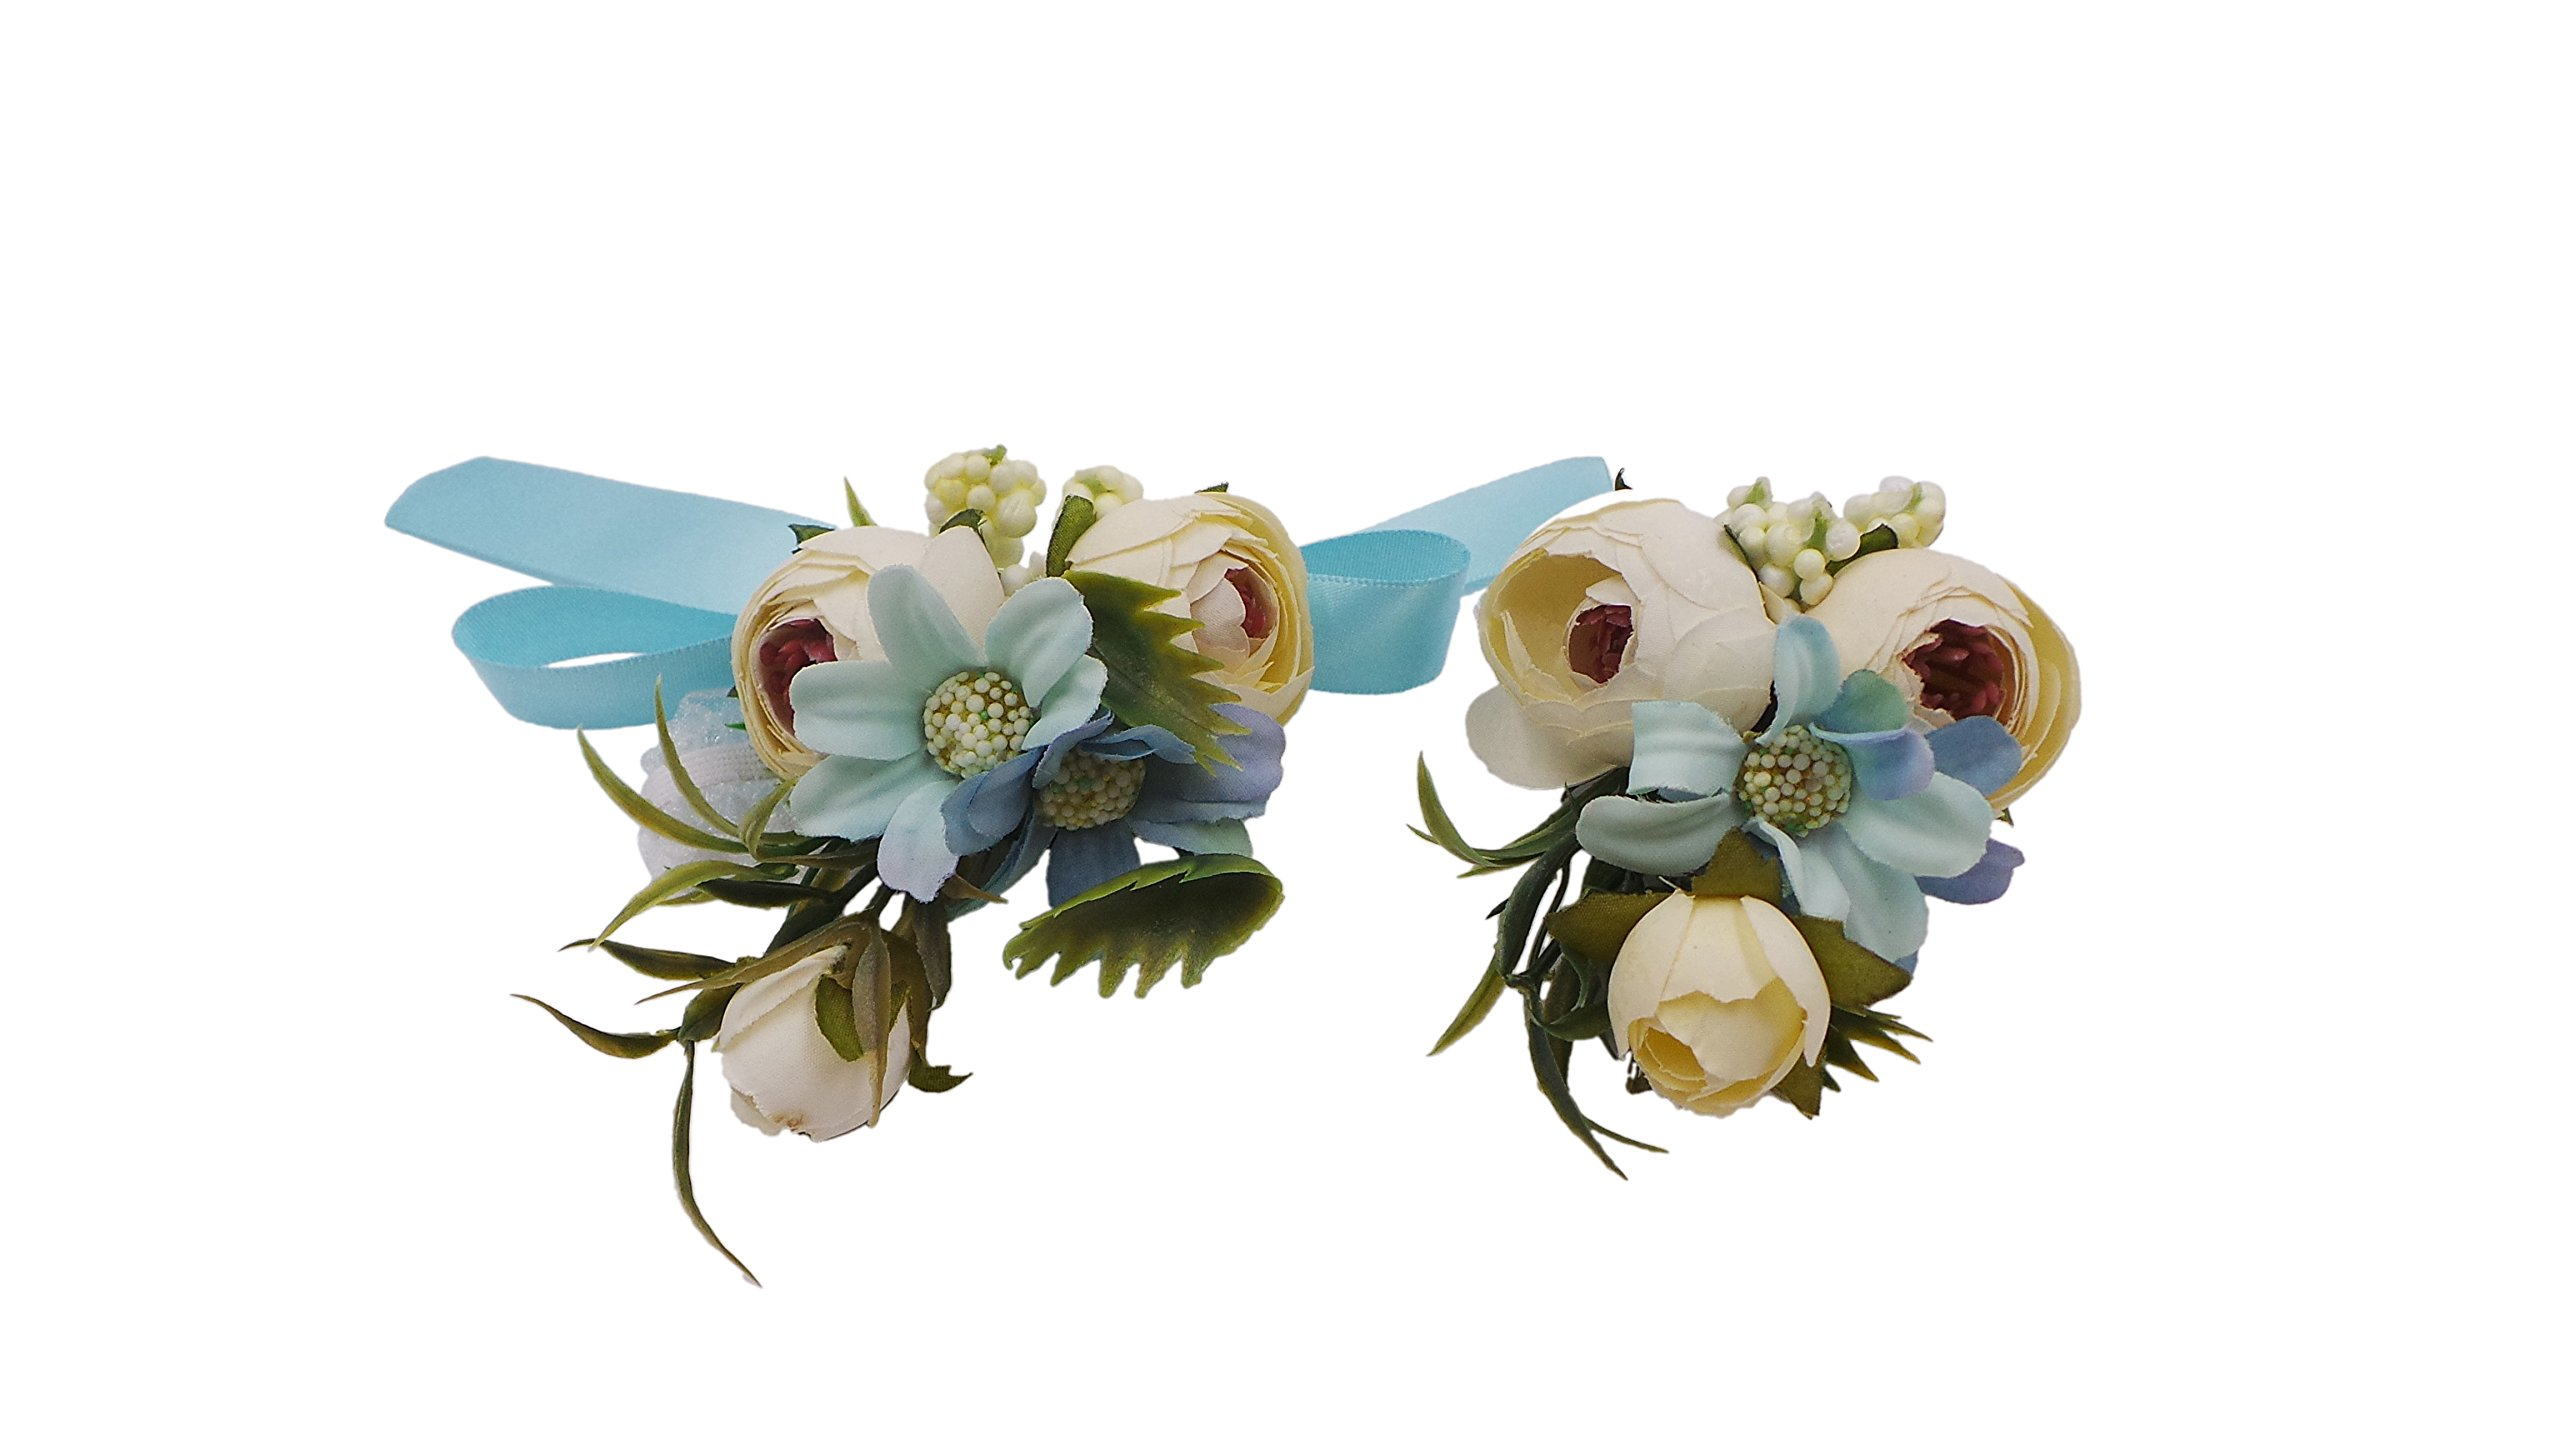 Abbie-Home-Wedding-Wrist-Corsage-Brooch-Boutonniere-Set-Party-Prom-Hand-Flower-Decor-8003-WB